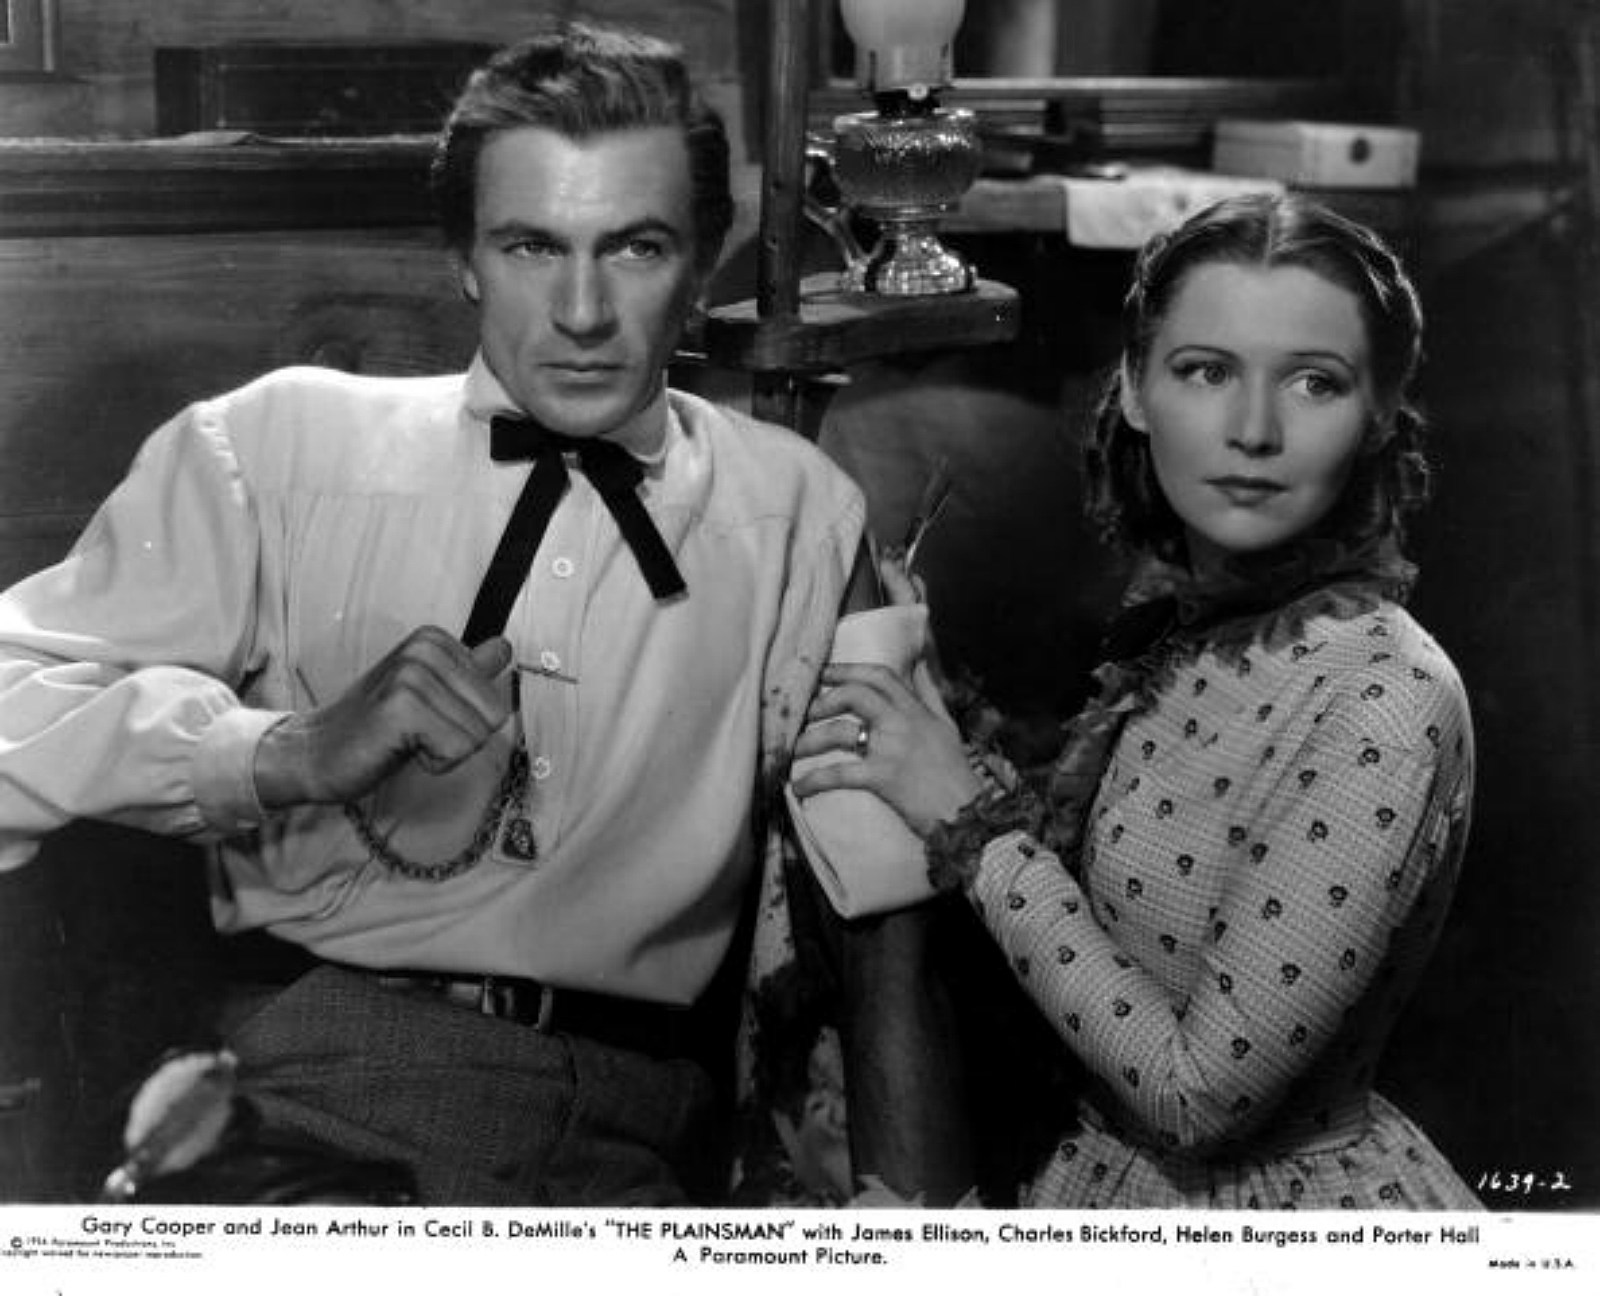 Gary Cooper and Helen Burgess star in 'The Plainsman', the story of Wild Bill Hickok and his friends. Hulton Archive, Getty Images